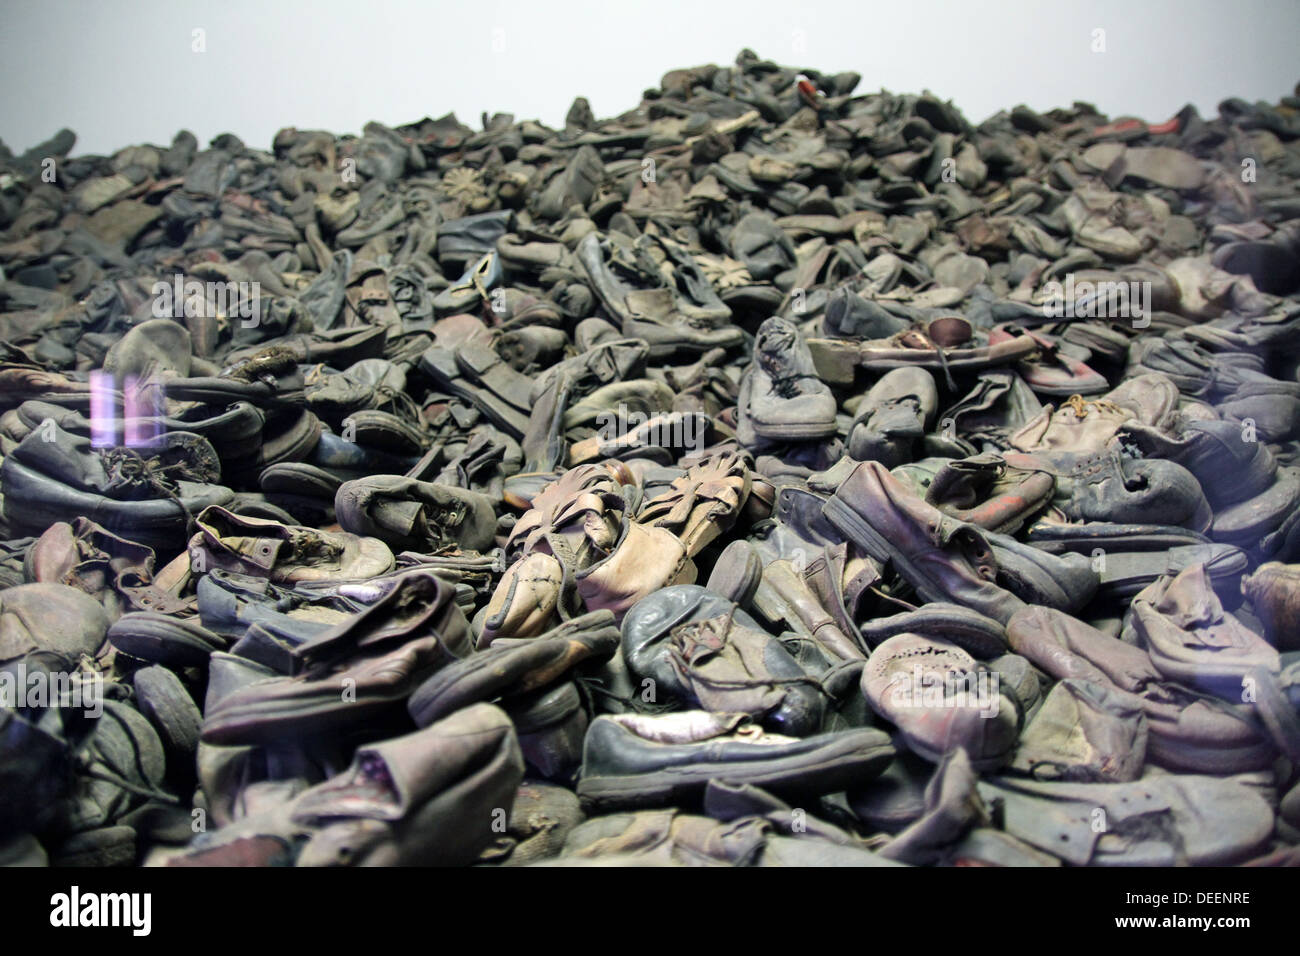 Behind a display glass, shoes of Jewish victims of the